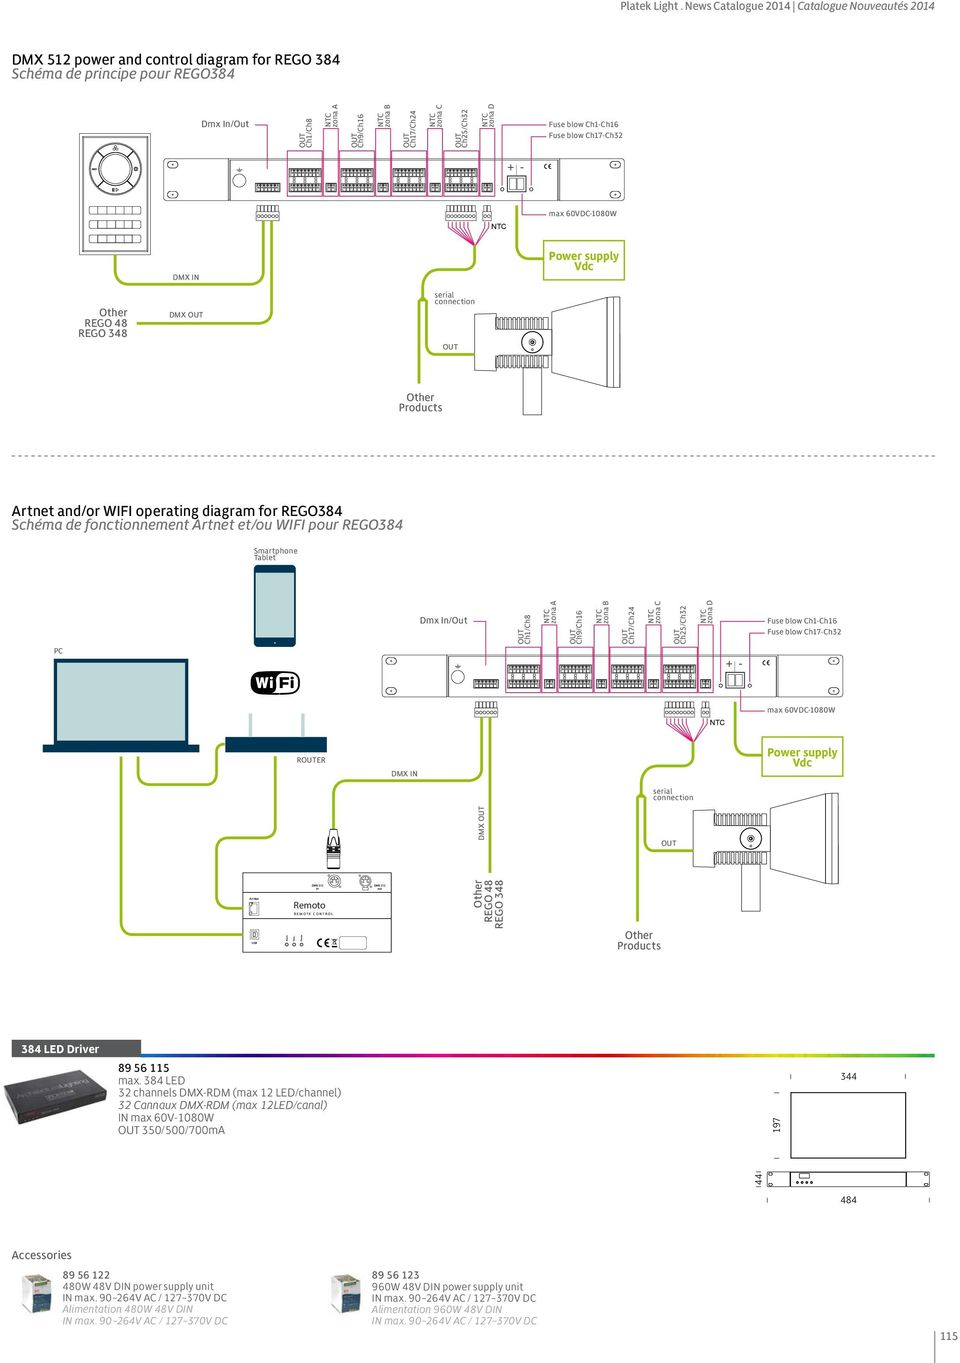 D Fuse blow Ch1-Ch16 Fuse blow Ch17-Ch32 + - max 60VDC-1080W DMX IN Power supply Vdc REGO 348 DMX serial connection Products Artnet and/or WIFI operating diagram for REGO384 Schéma de fonctionnement